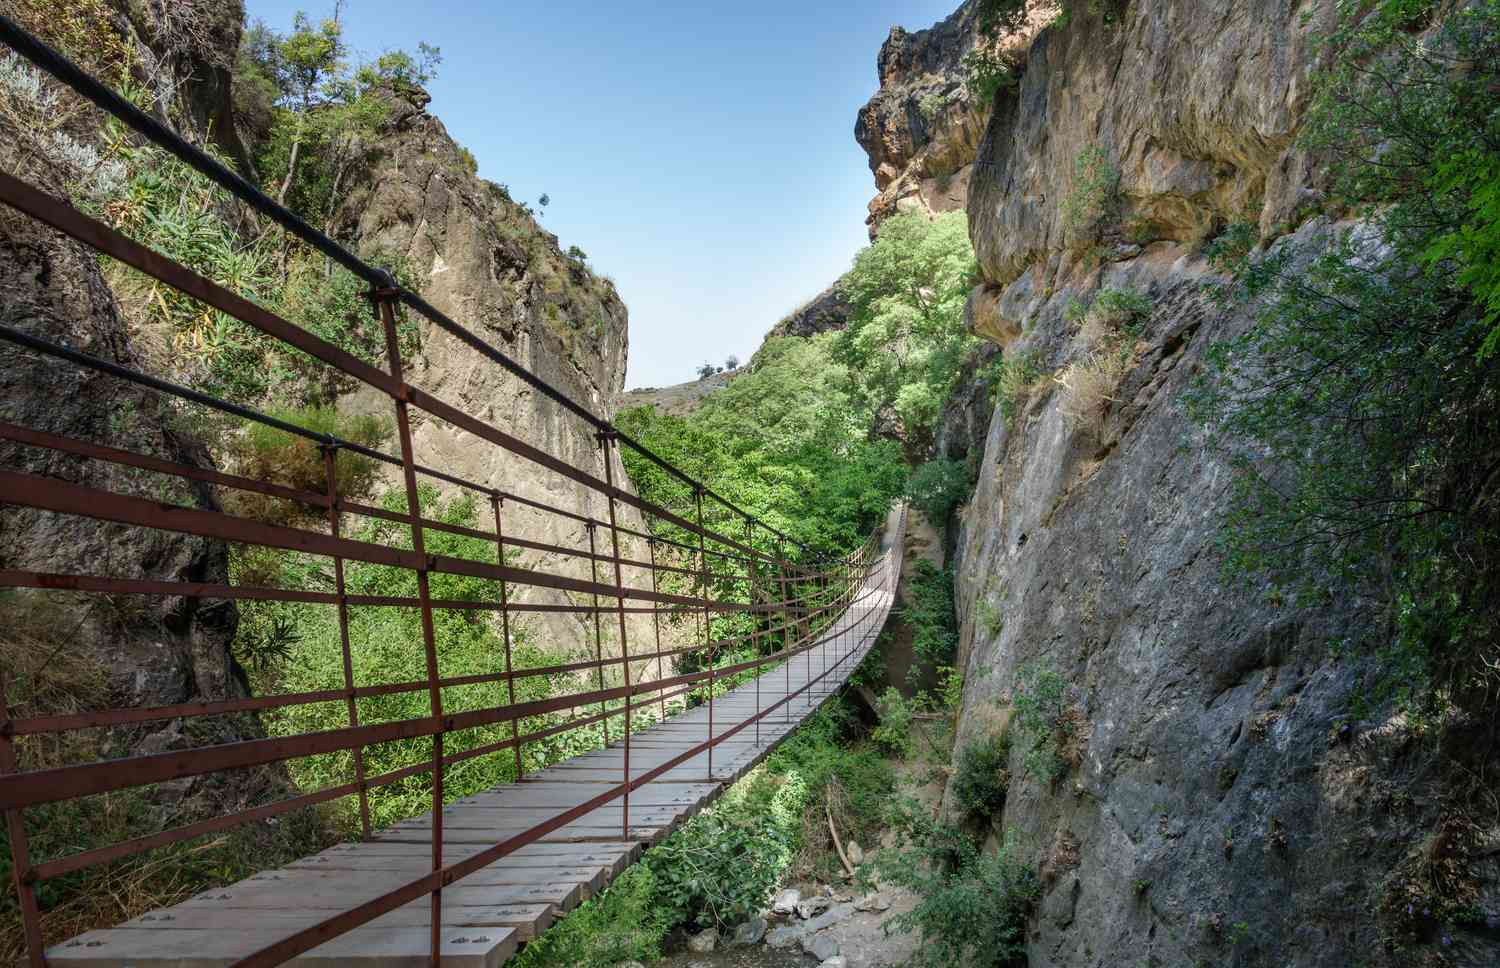 Hanging bridges on the Los Cahorros - Monachil hiking route in Spain